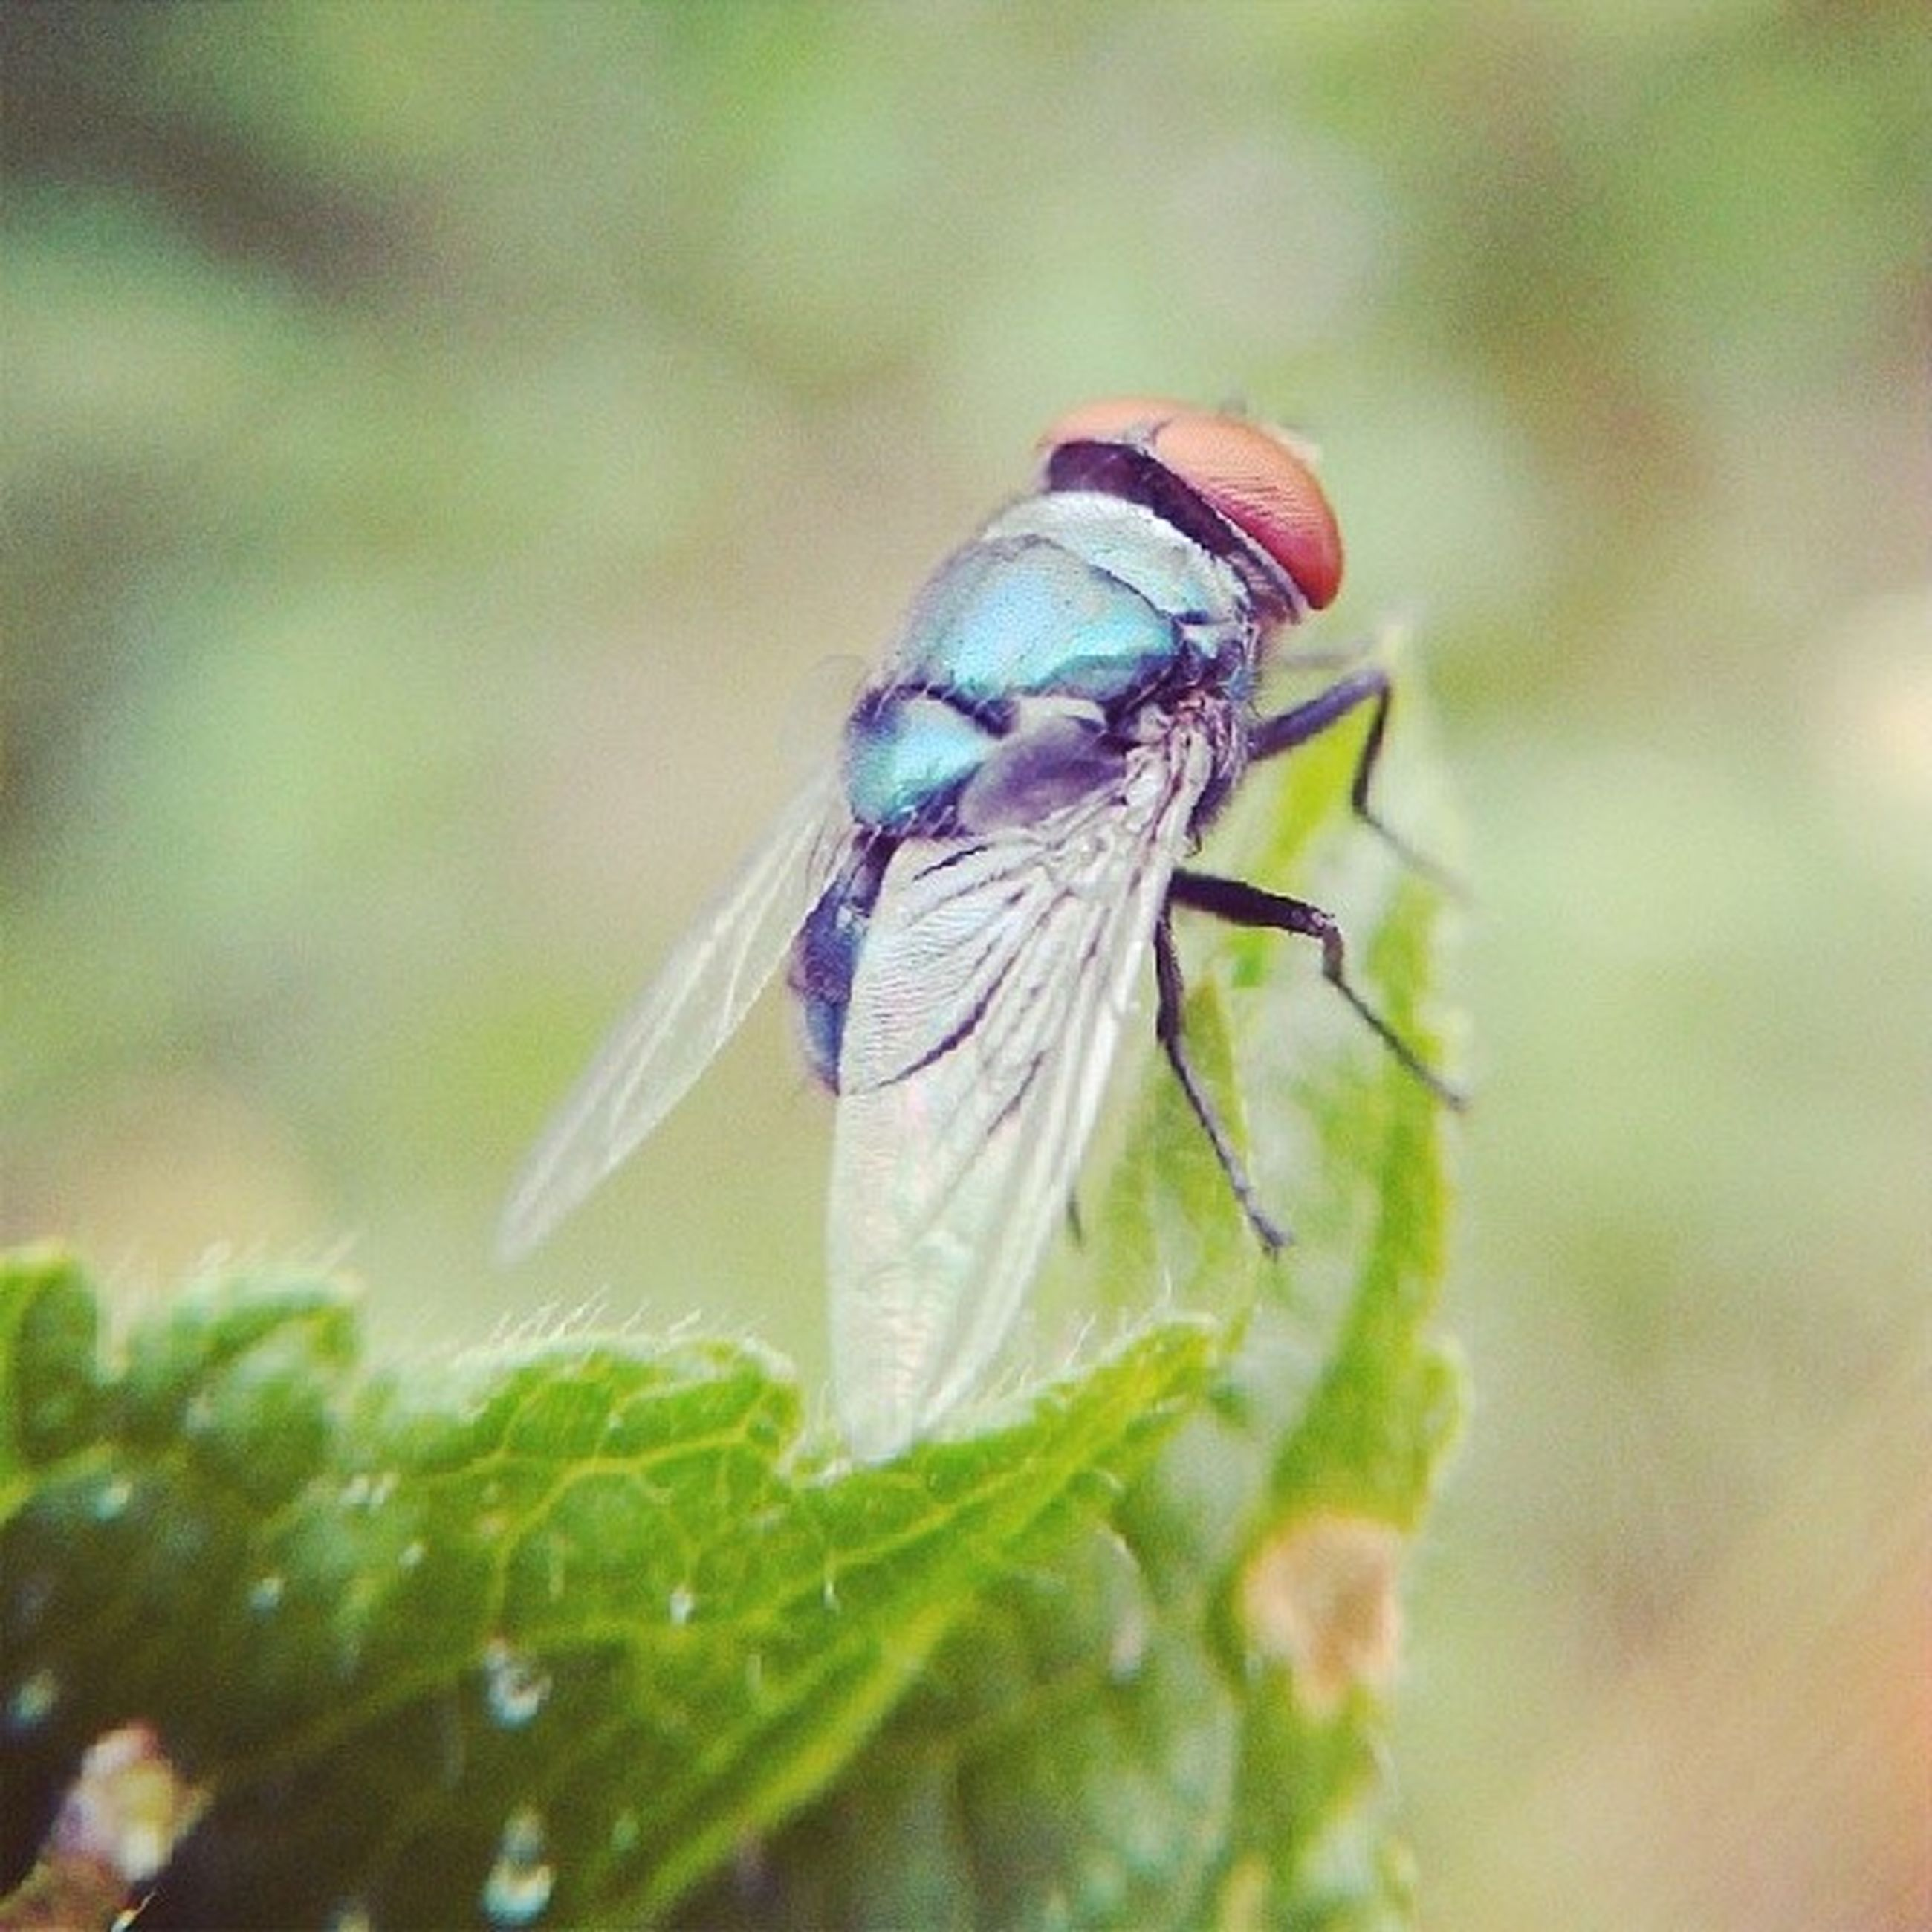 one animal, insect, animals in the wild, animal themes, wildlife, close-up, selective focus, focus on foreground, nature, leaf, green color, beauty in nature, day, outdoors, plant, zoology, no people, full length, animal antenna, dragonfly